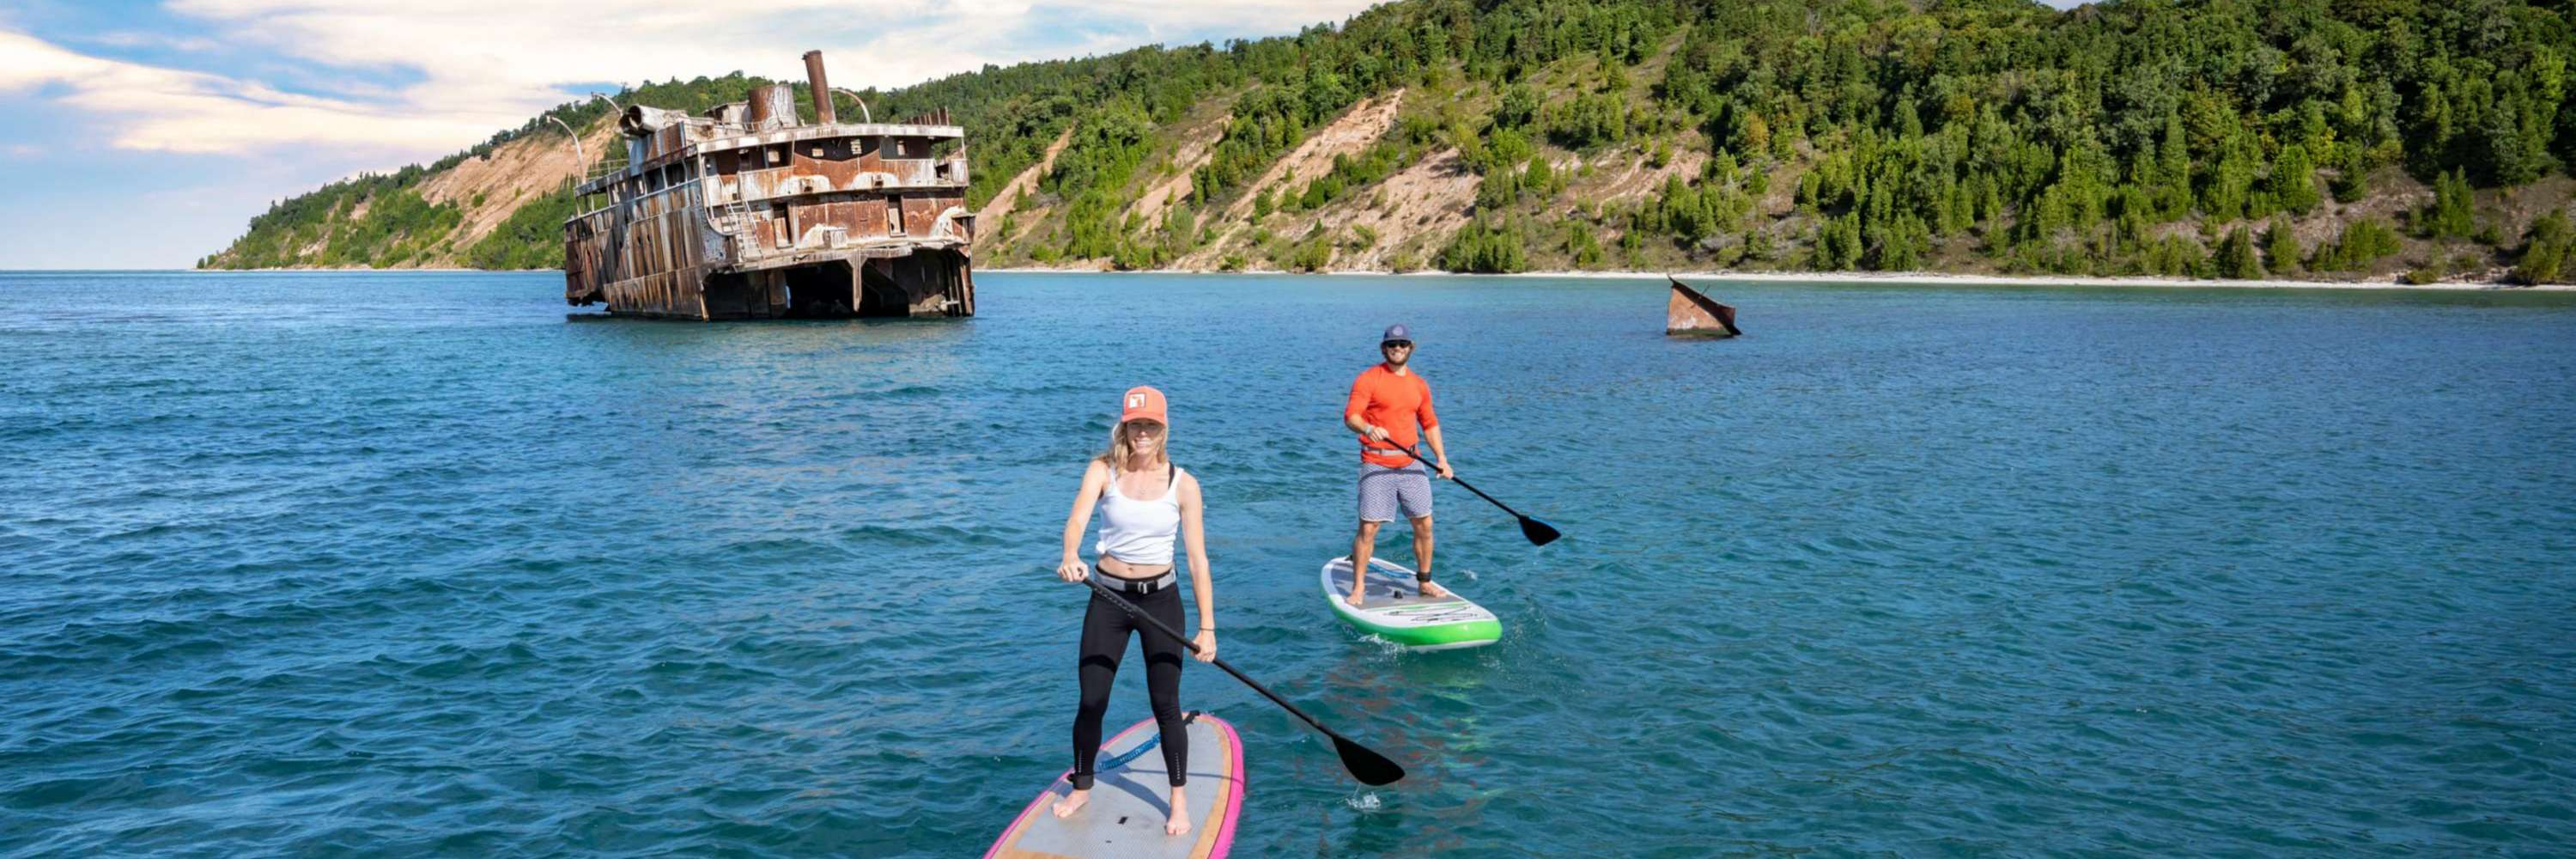 Paddleboard in South Manitou Island